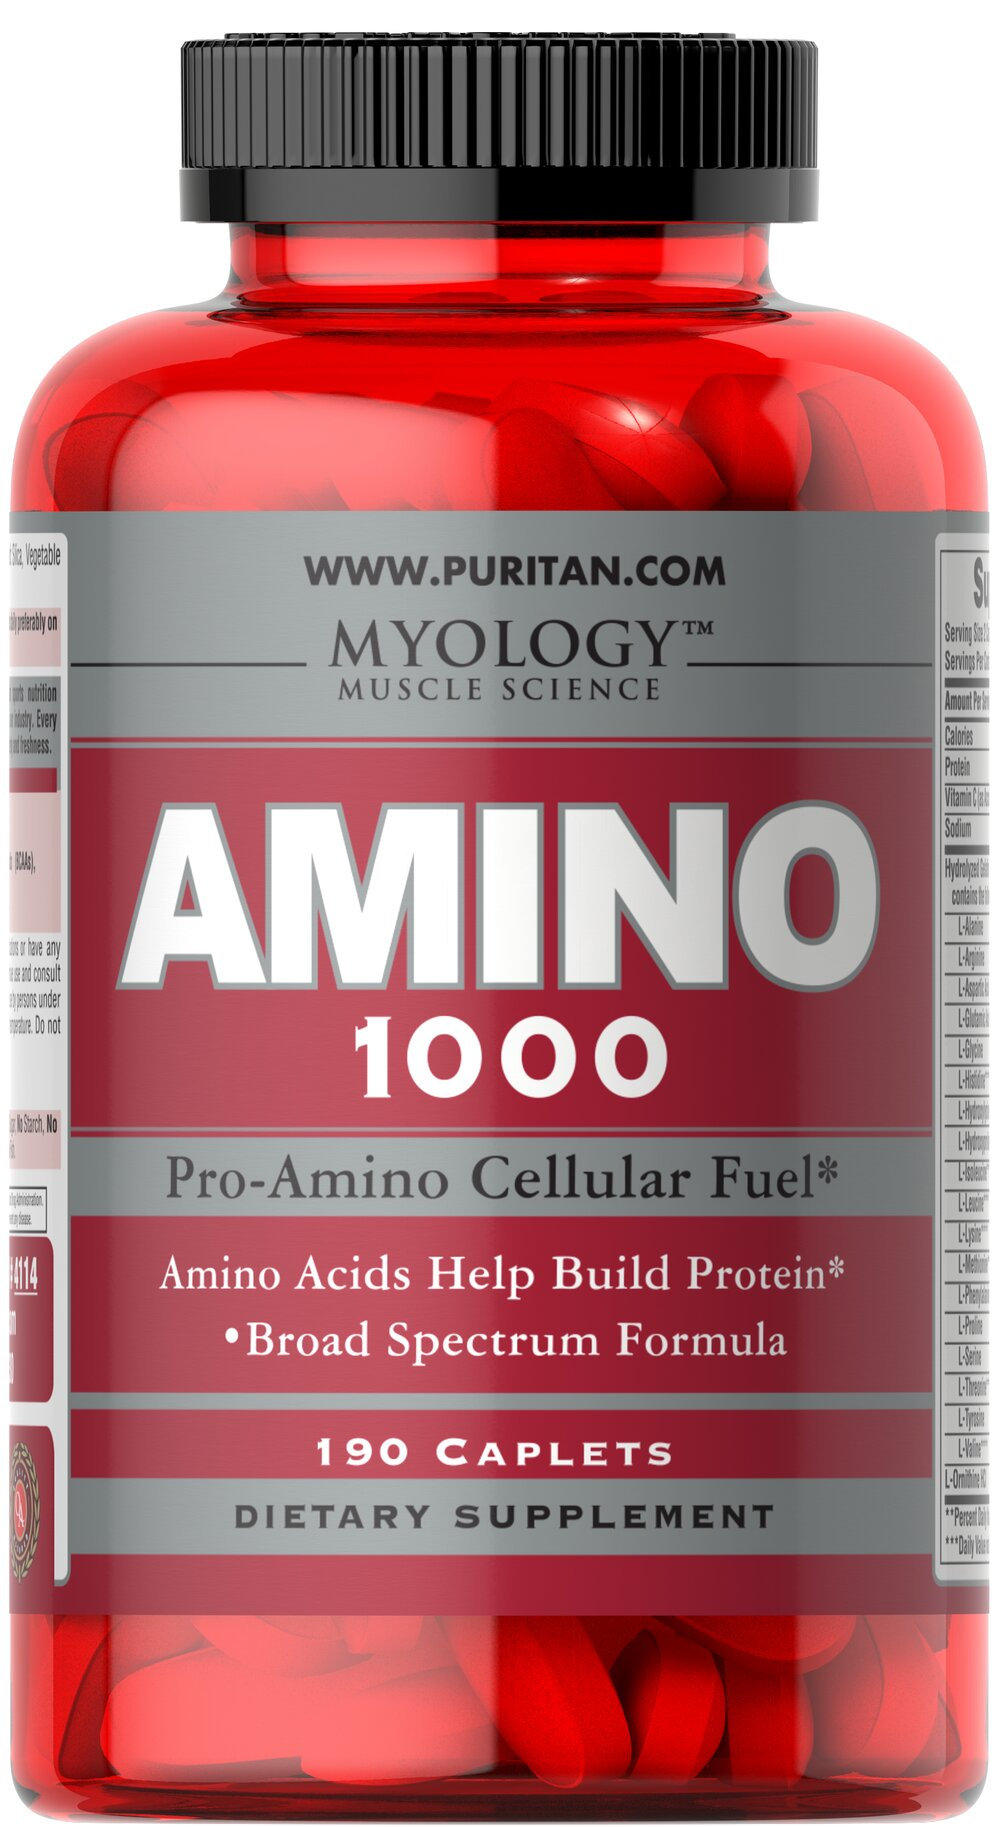 "Amino 1000 <p>This Amino Acid formula contains all three Branch Chained Amino Acids (BCAAs), as well as other essential Aminos.  Amino Acids provide crucial building blocks for protein which are the main components of muscle tissue.** Product includes: <span style=""font-size:11.0pt;font-family:'Calibri','sans-serif';"">424mg of Glycine, 30mg of Ornithine, 140mg of Arginine and 60mg of Lysine</span><br /></p> 190 Caplets 1000 mg $19.99"